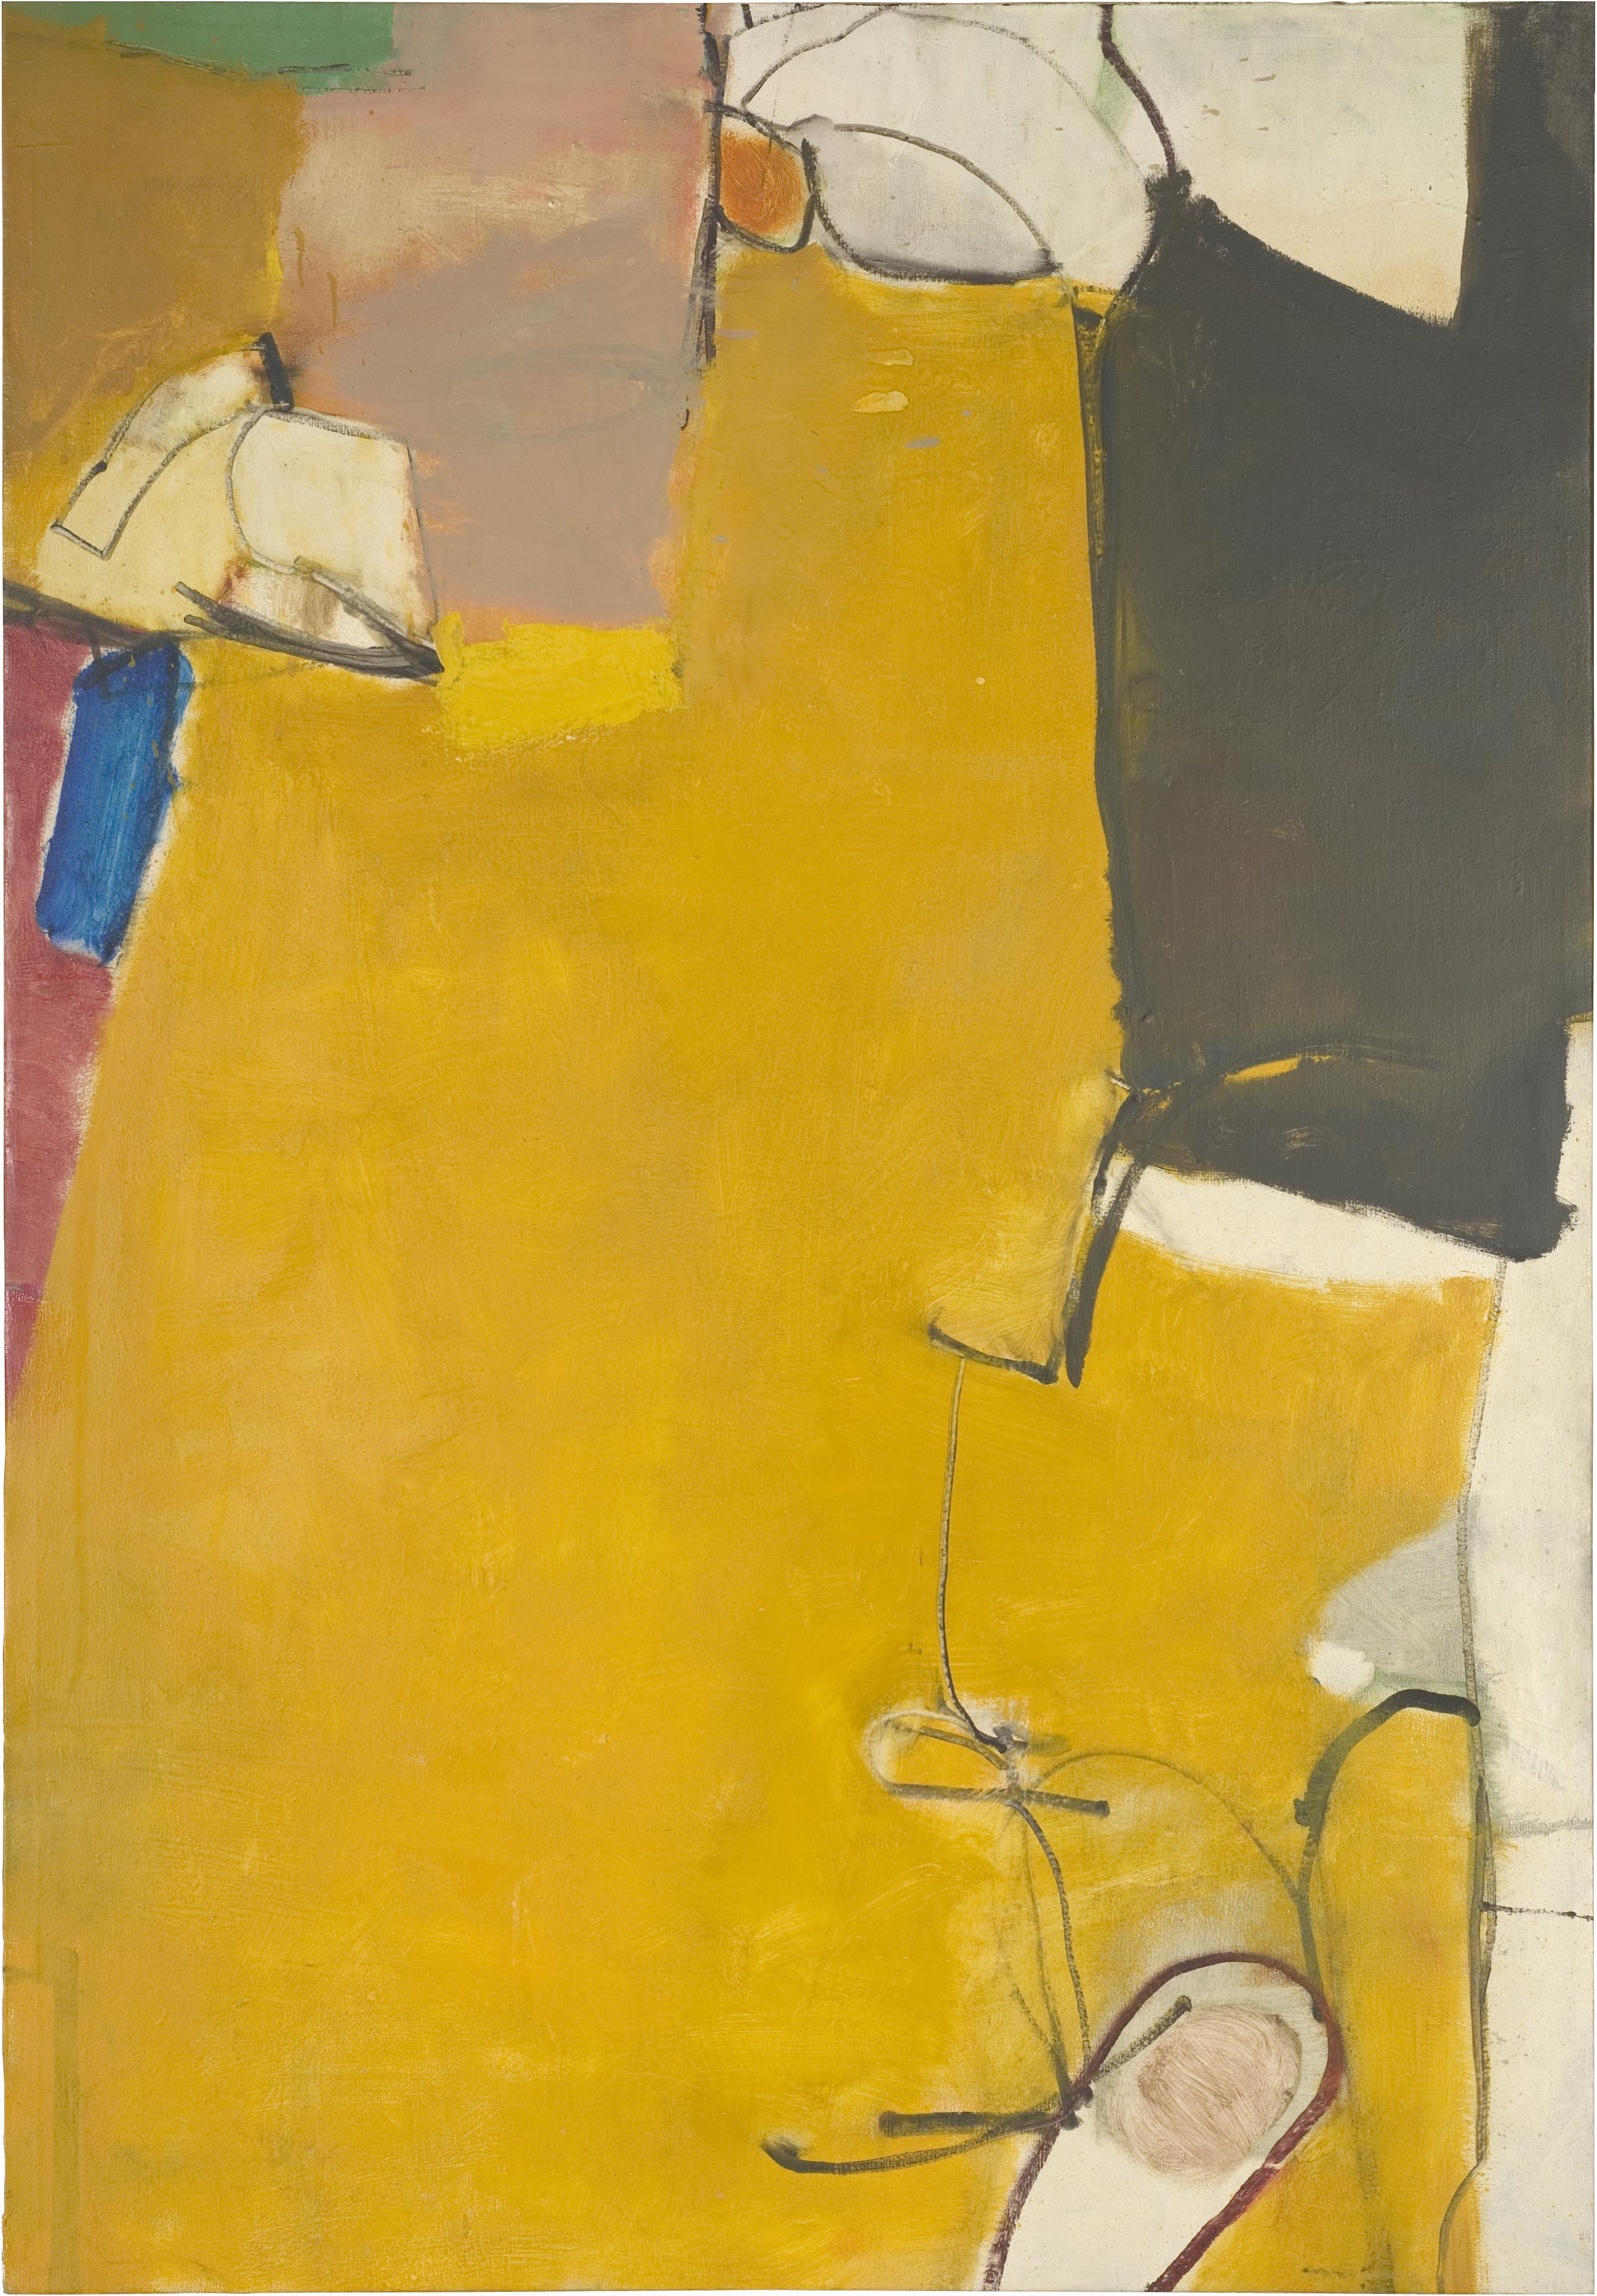 11_PAINTING ALBUQUERQUE - Richard Diebenkorn - Untitled_ 1951_ The Richard Diebenkorn Foundation